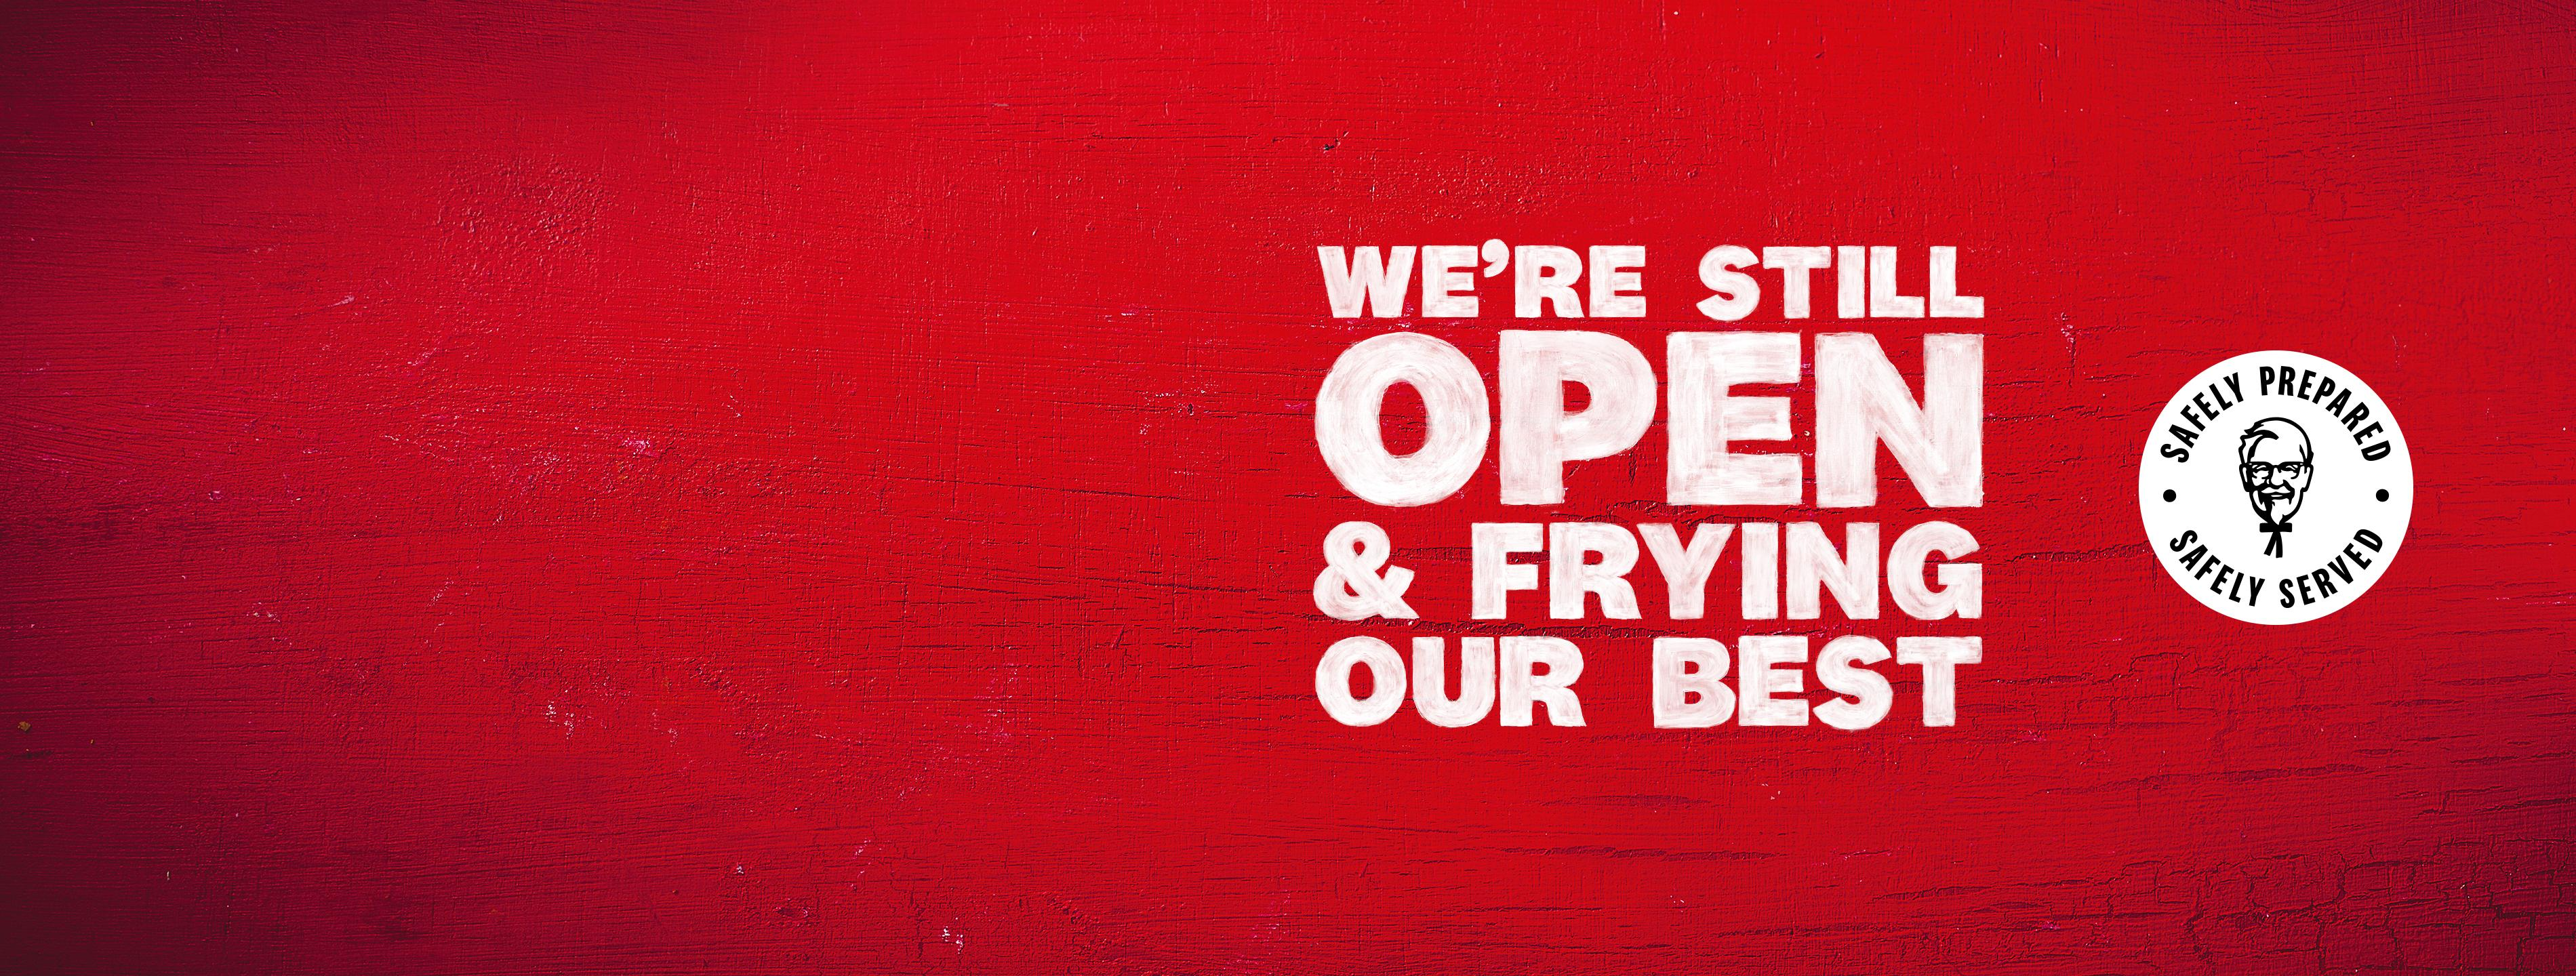 WE'RE OPEN & FRYING OUR BEST